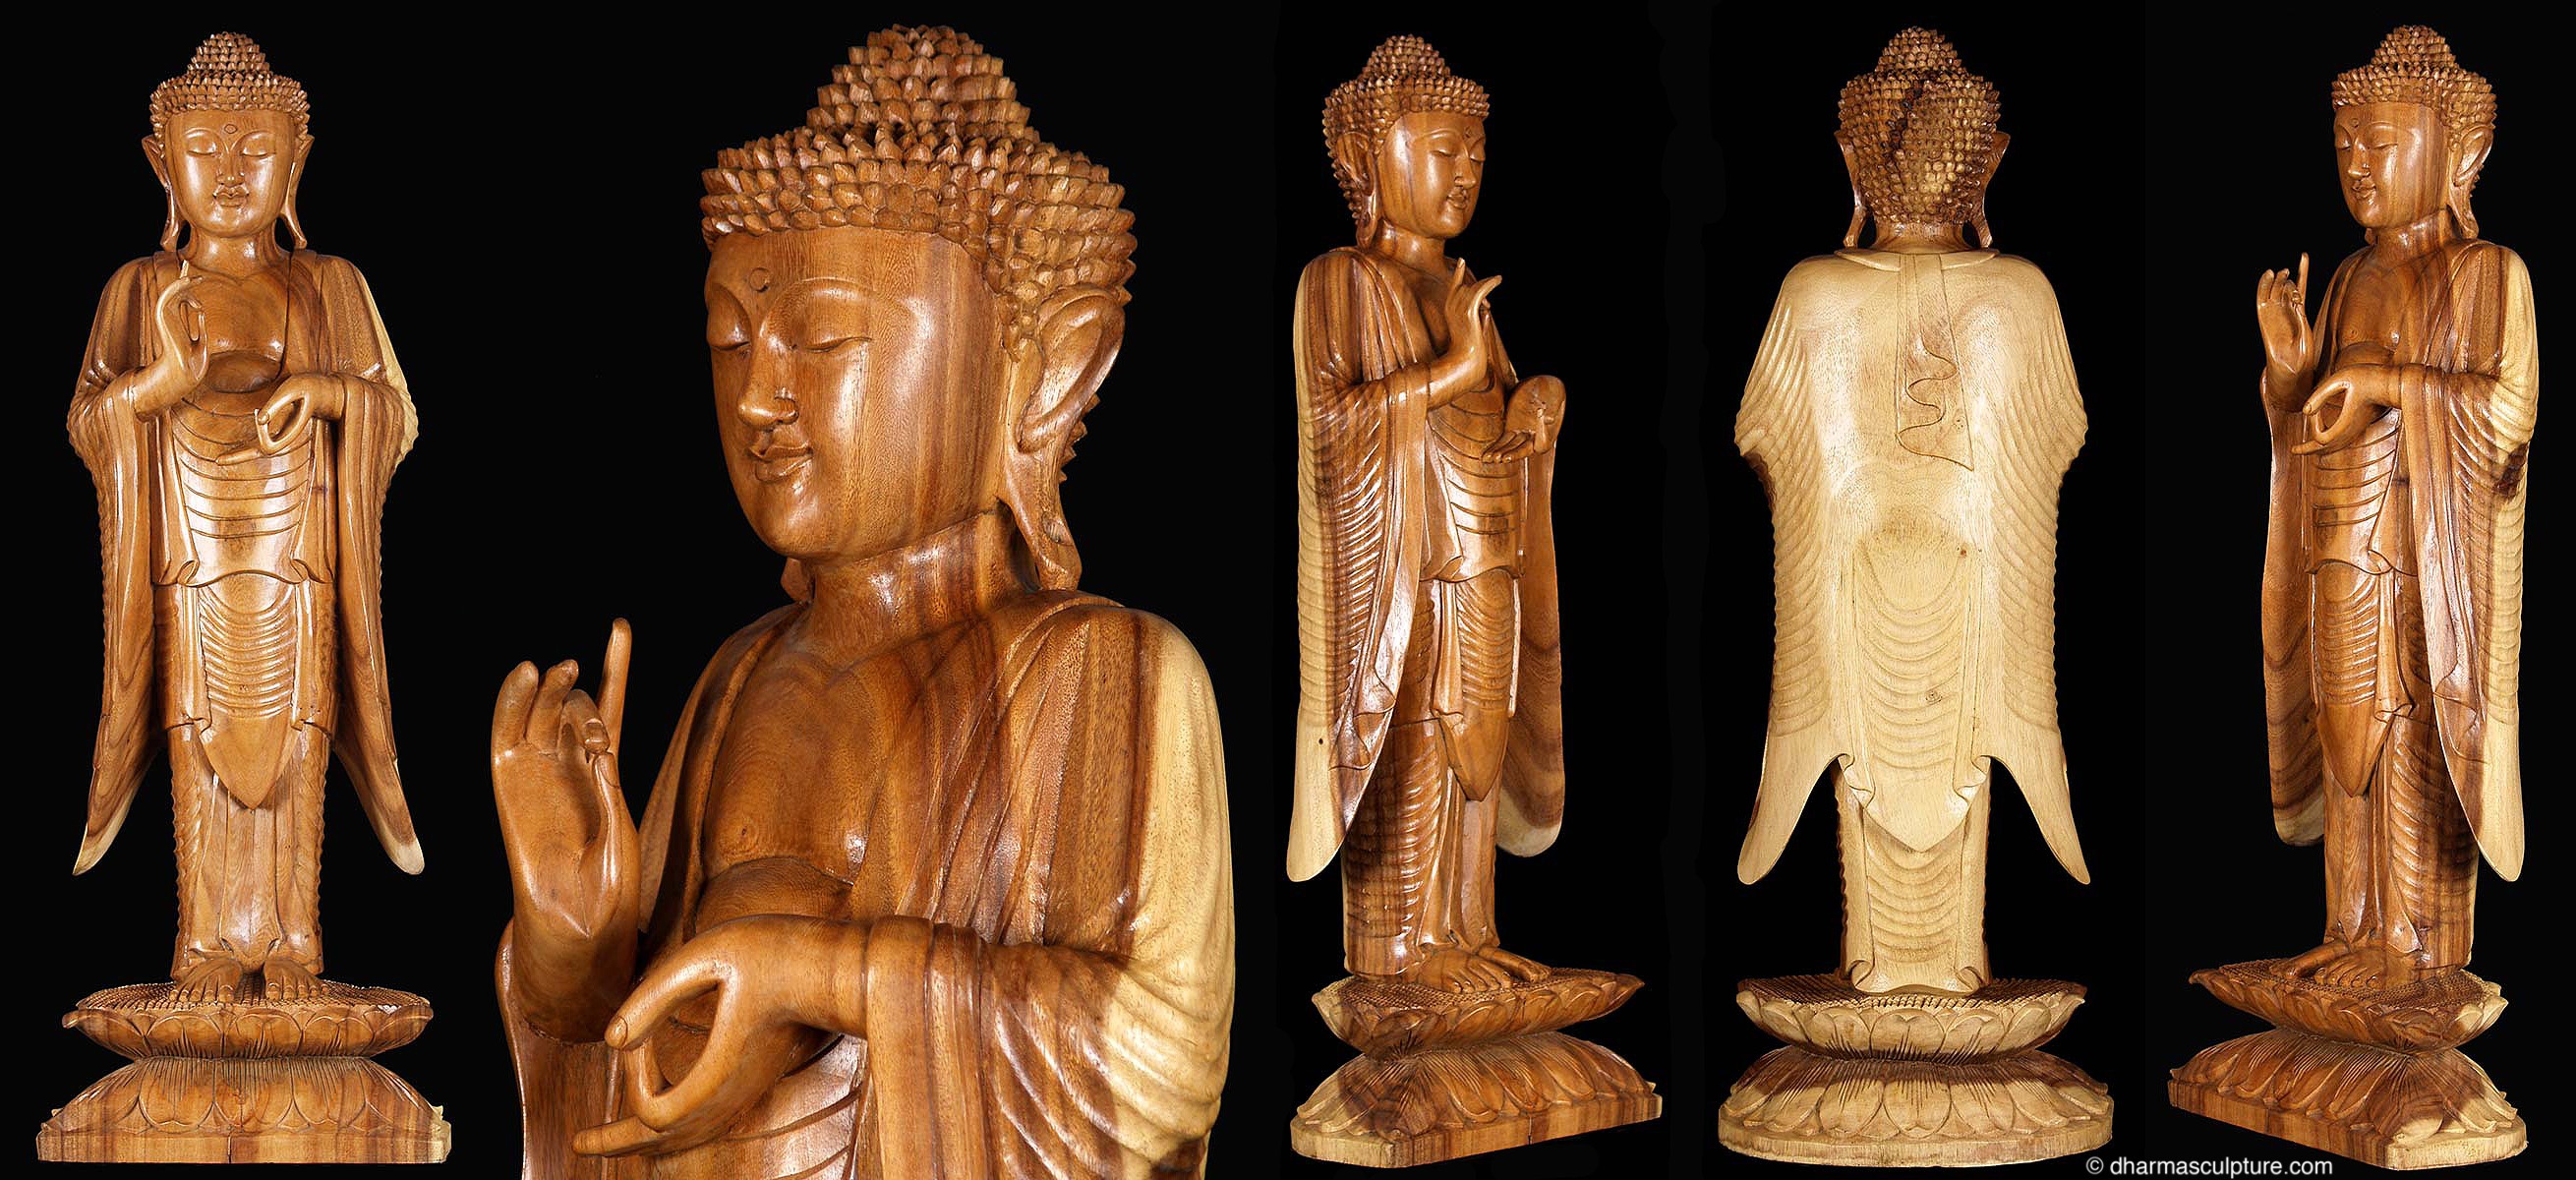 Dharma sculpture blog page 2 of 5 buddha statues buddha lord buddhas hands are in the dharmachakra mudra this is the gesture of teaching dharma means law and chakra means wheel and is usually interpreted buycottarizona